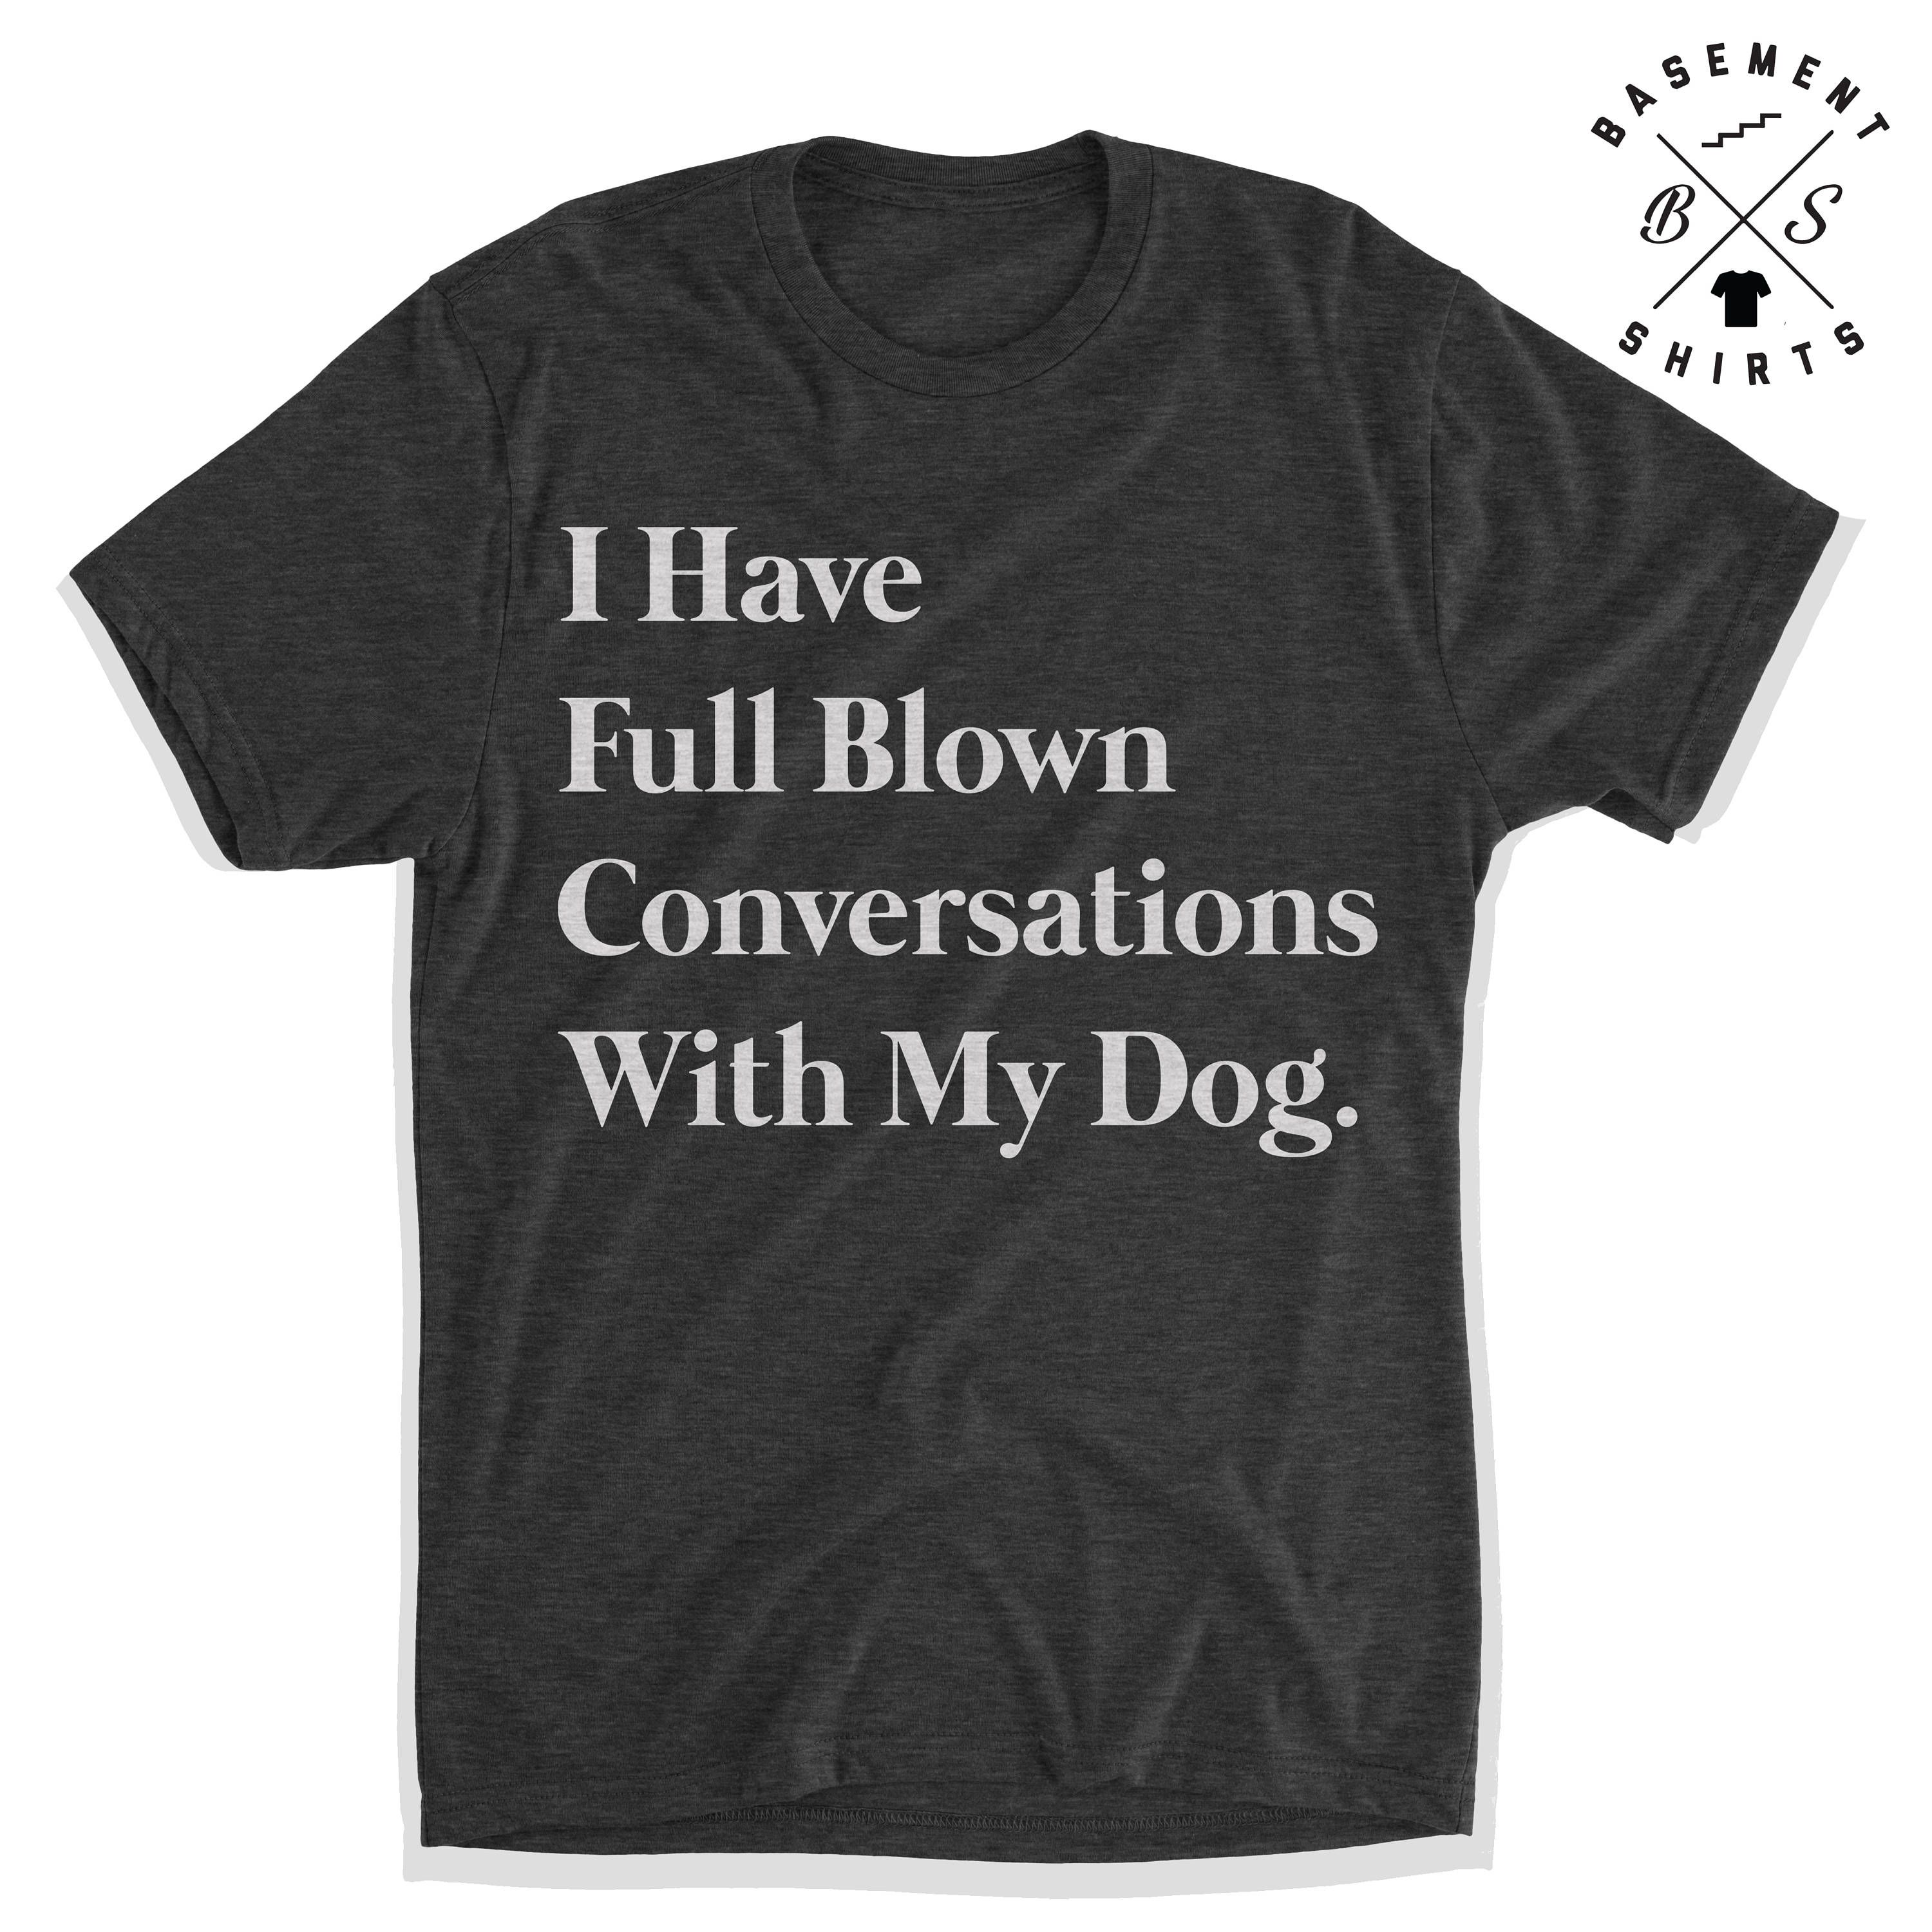 I Have Full Blown Conversations With My Dog Funny Dog Shirt